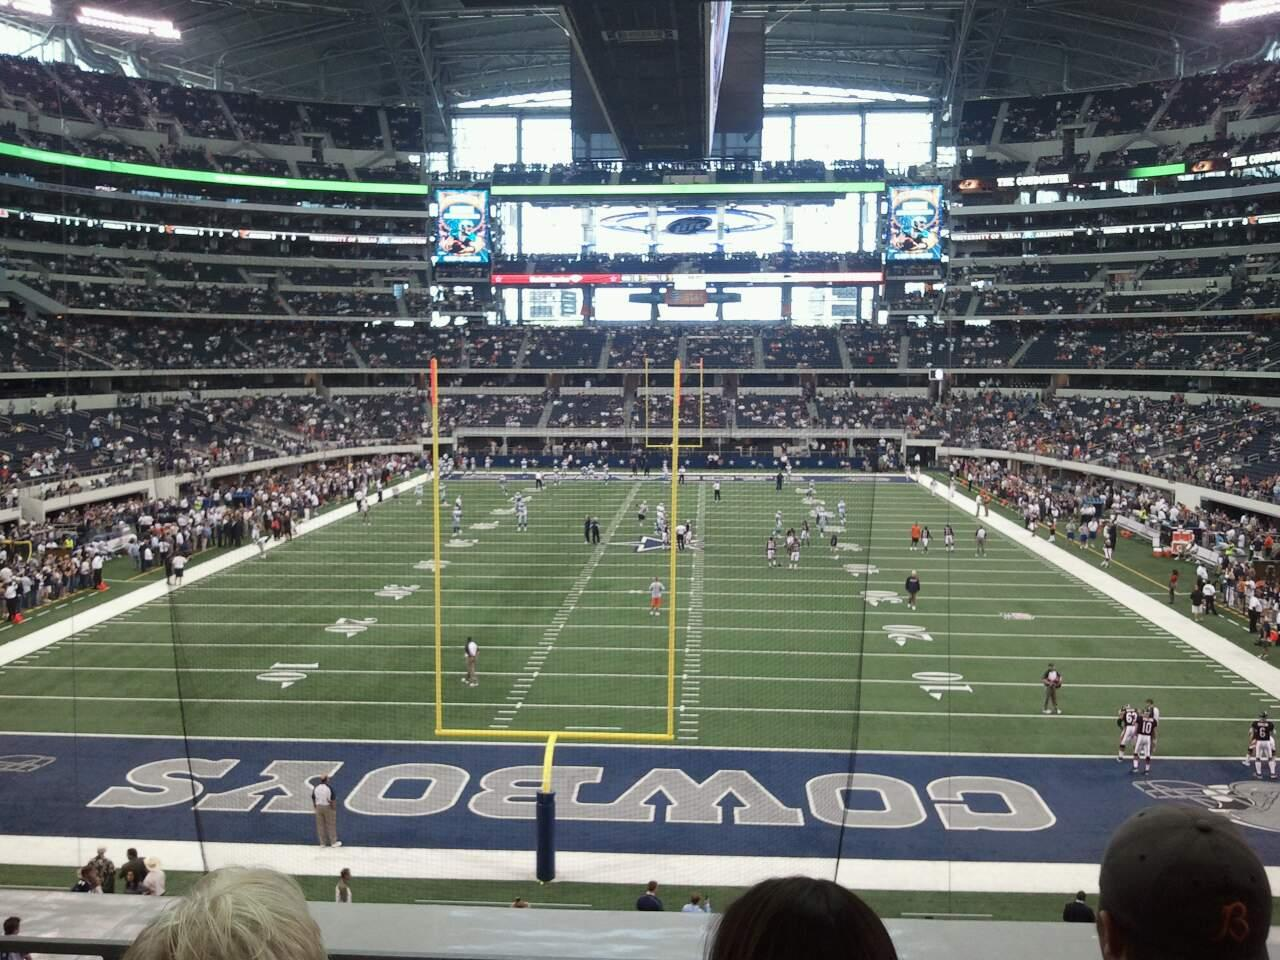 AT&T Stadium Section 248 Row 3 Seat 12